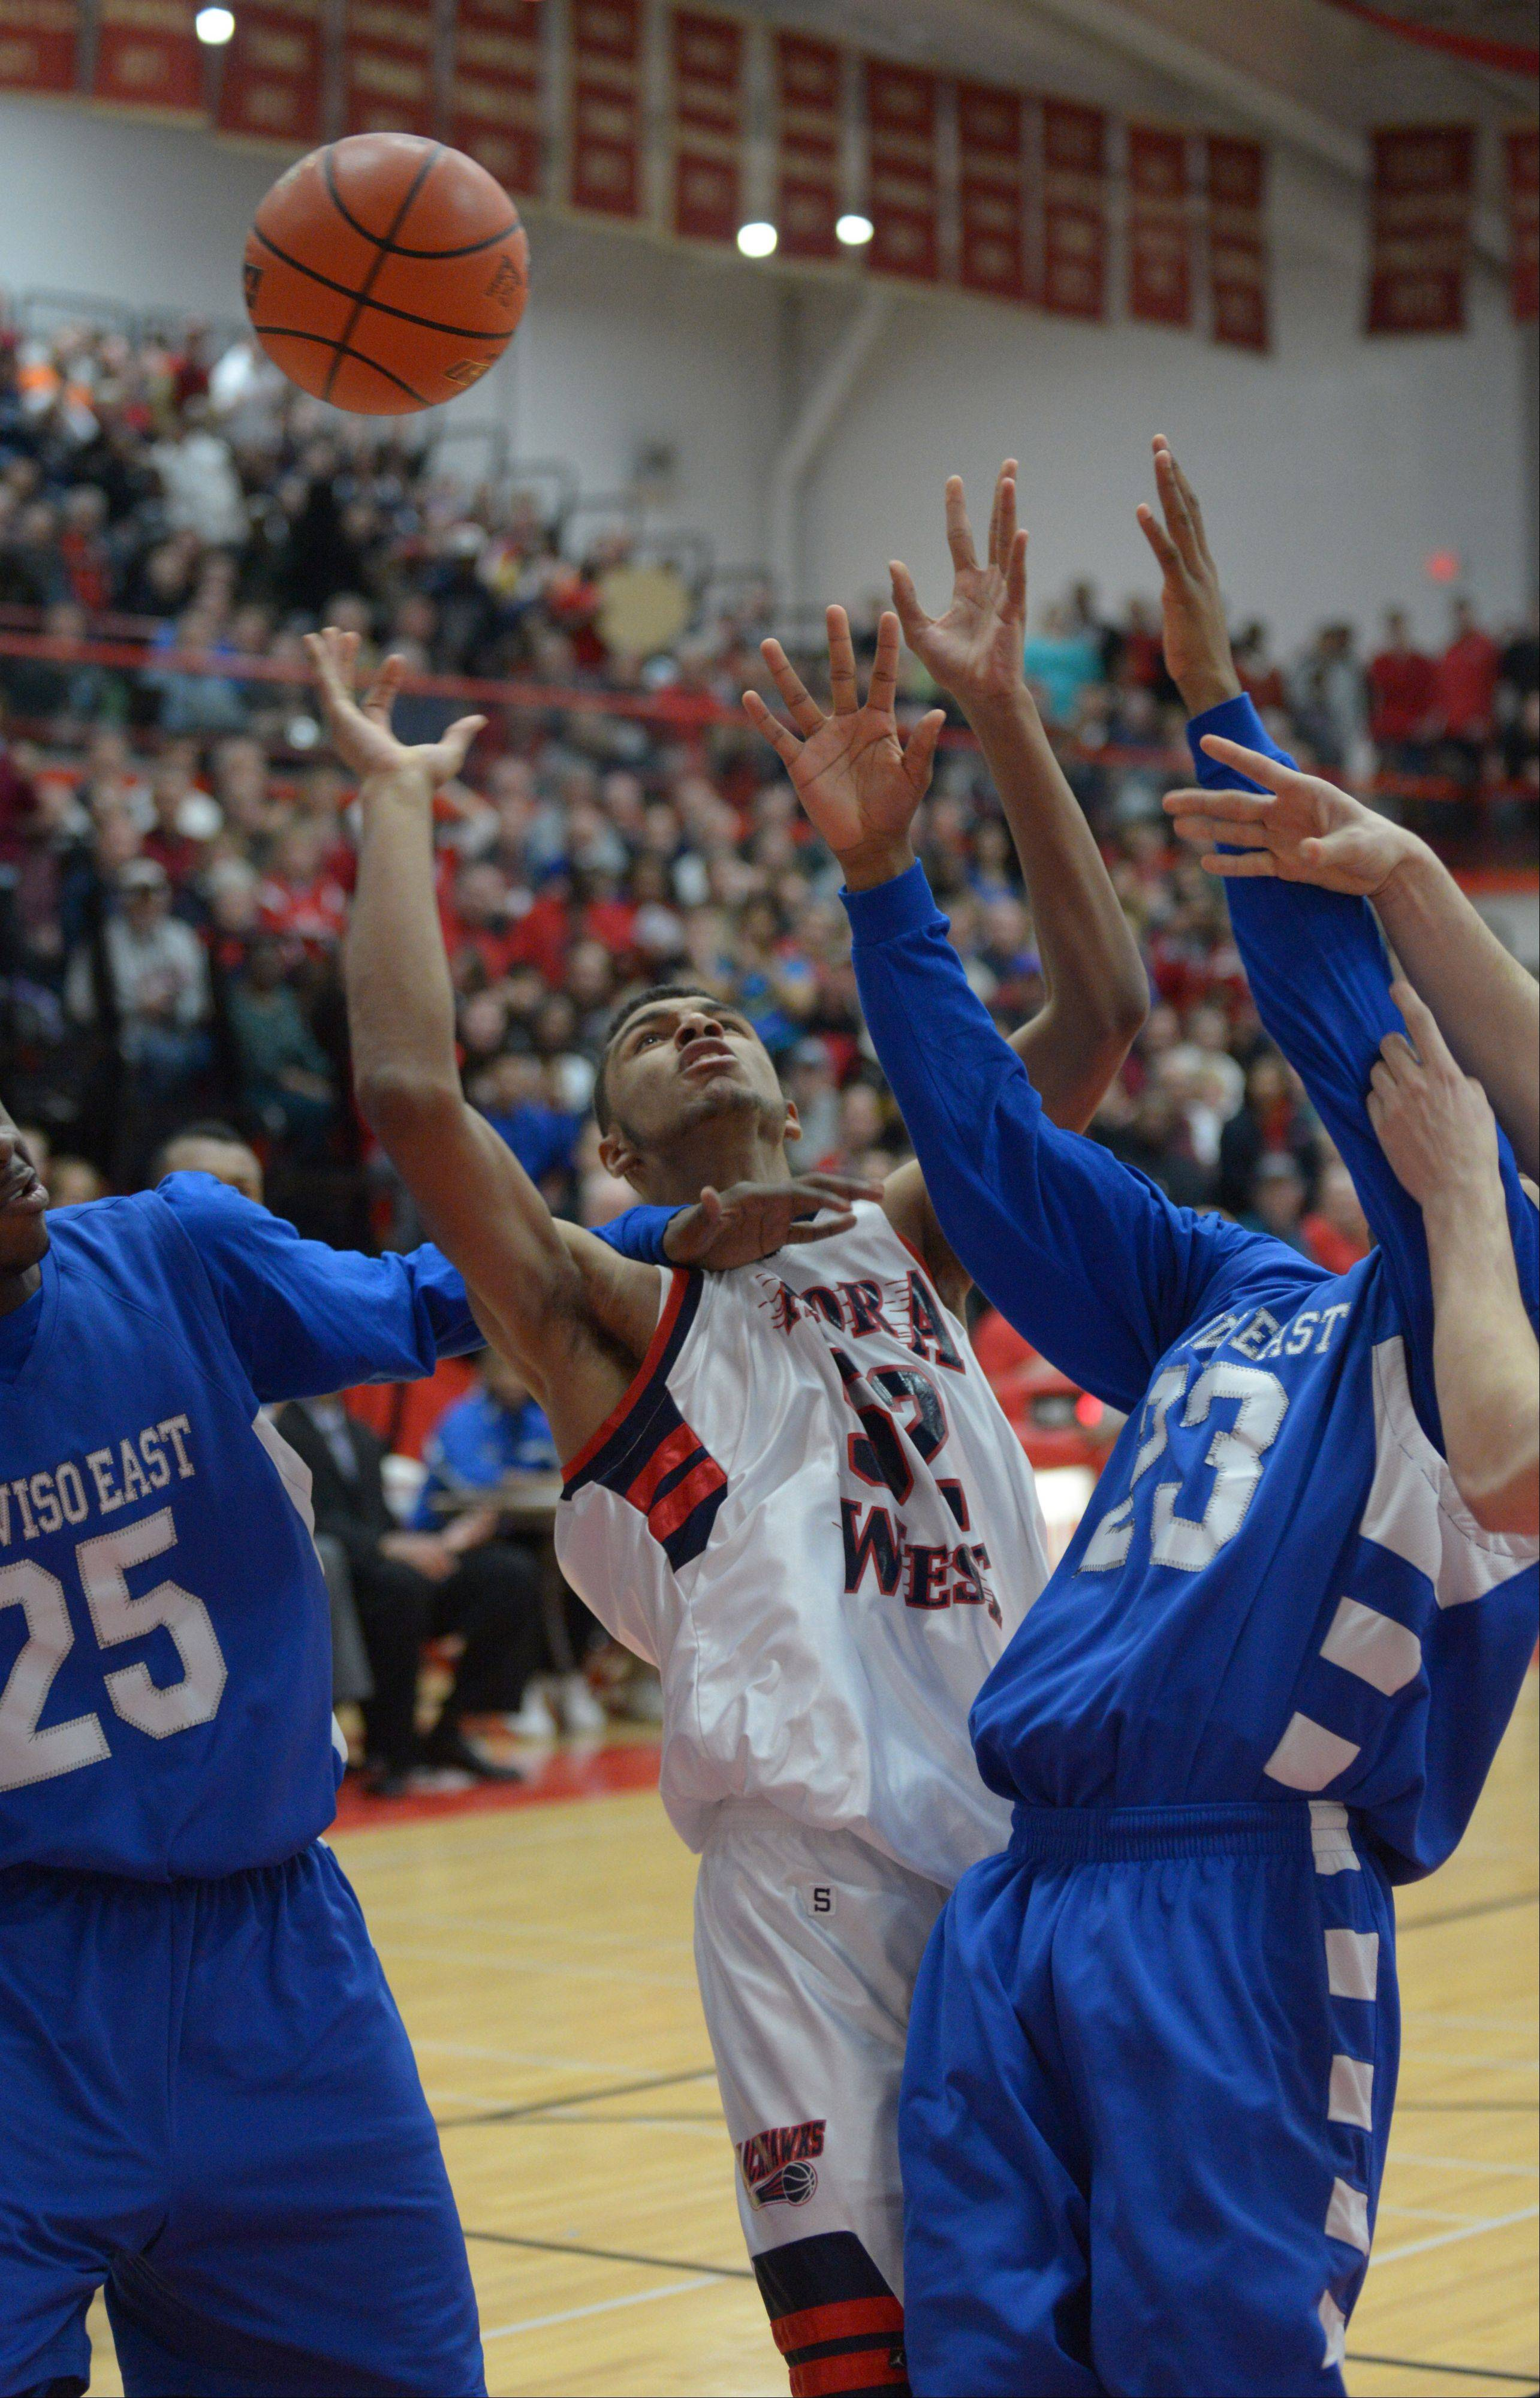 Joshua McAuley of West Aurora looks for a rebound during the West Aurora vs. Proviso East Class 4A Hinsdale Central boys basketball super sectional Tuesday.